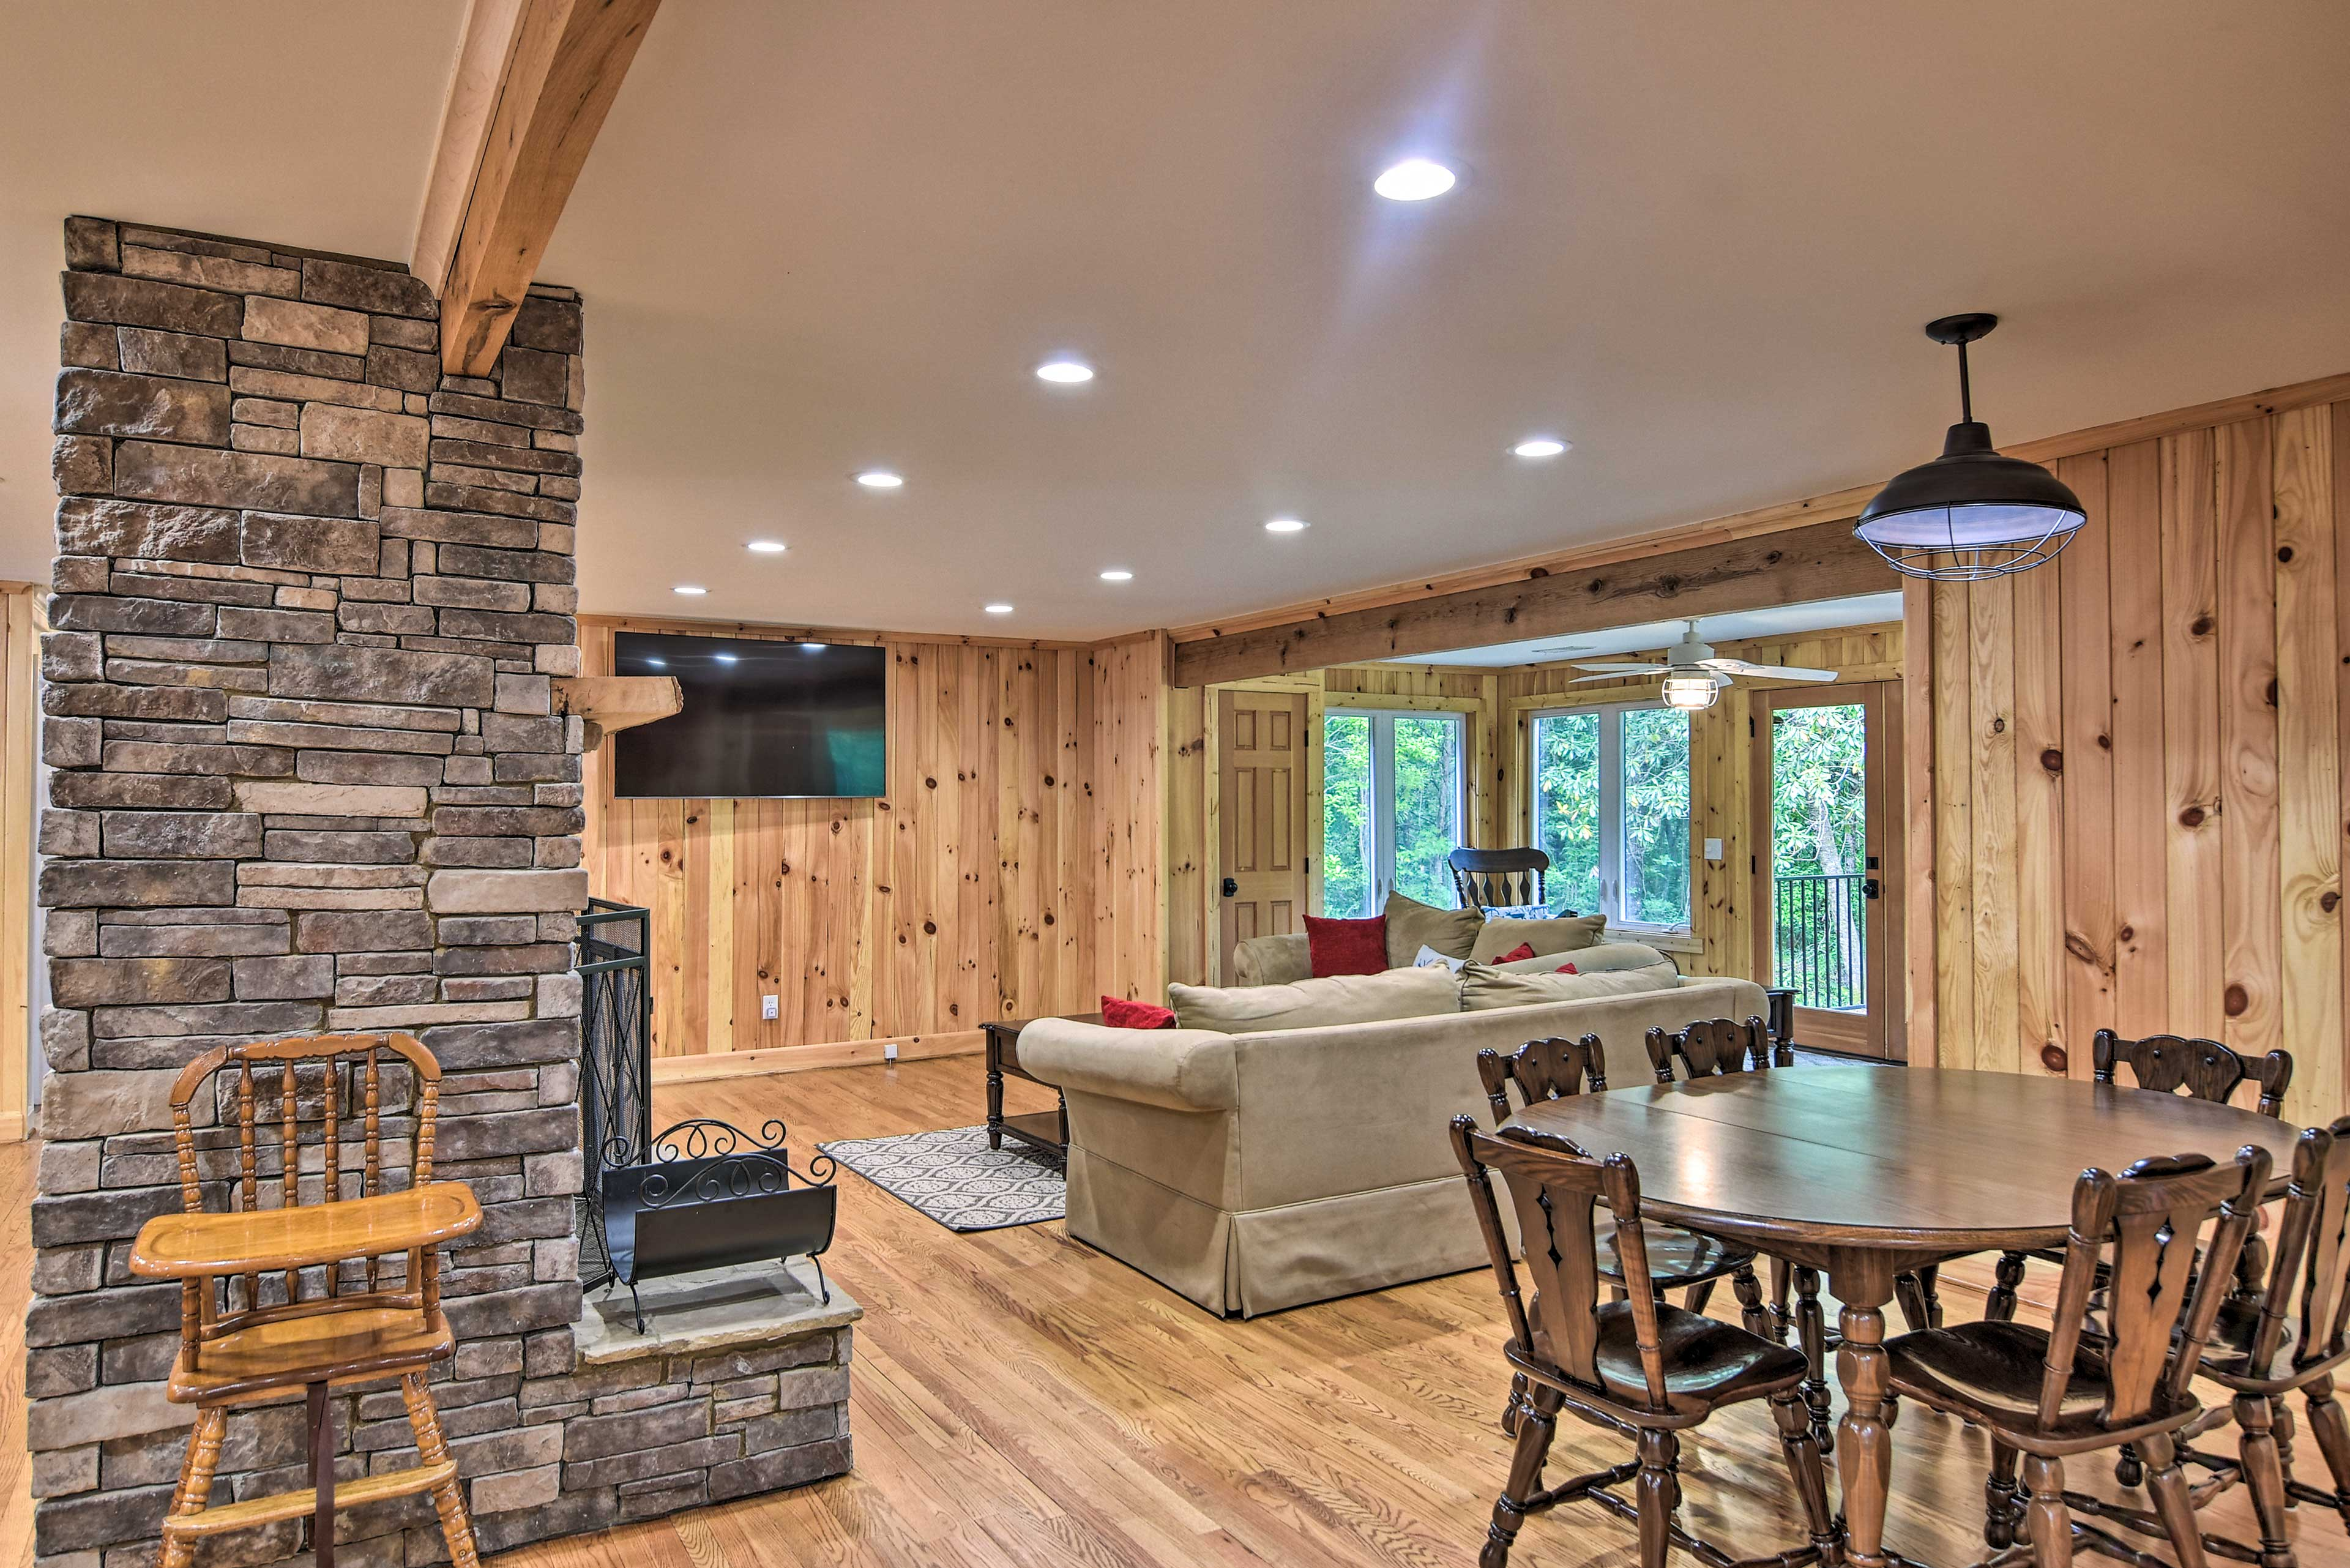 This area boasts an open-concept layout.